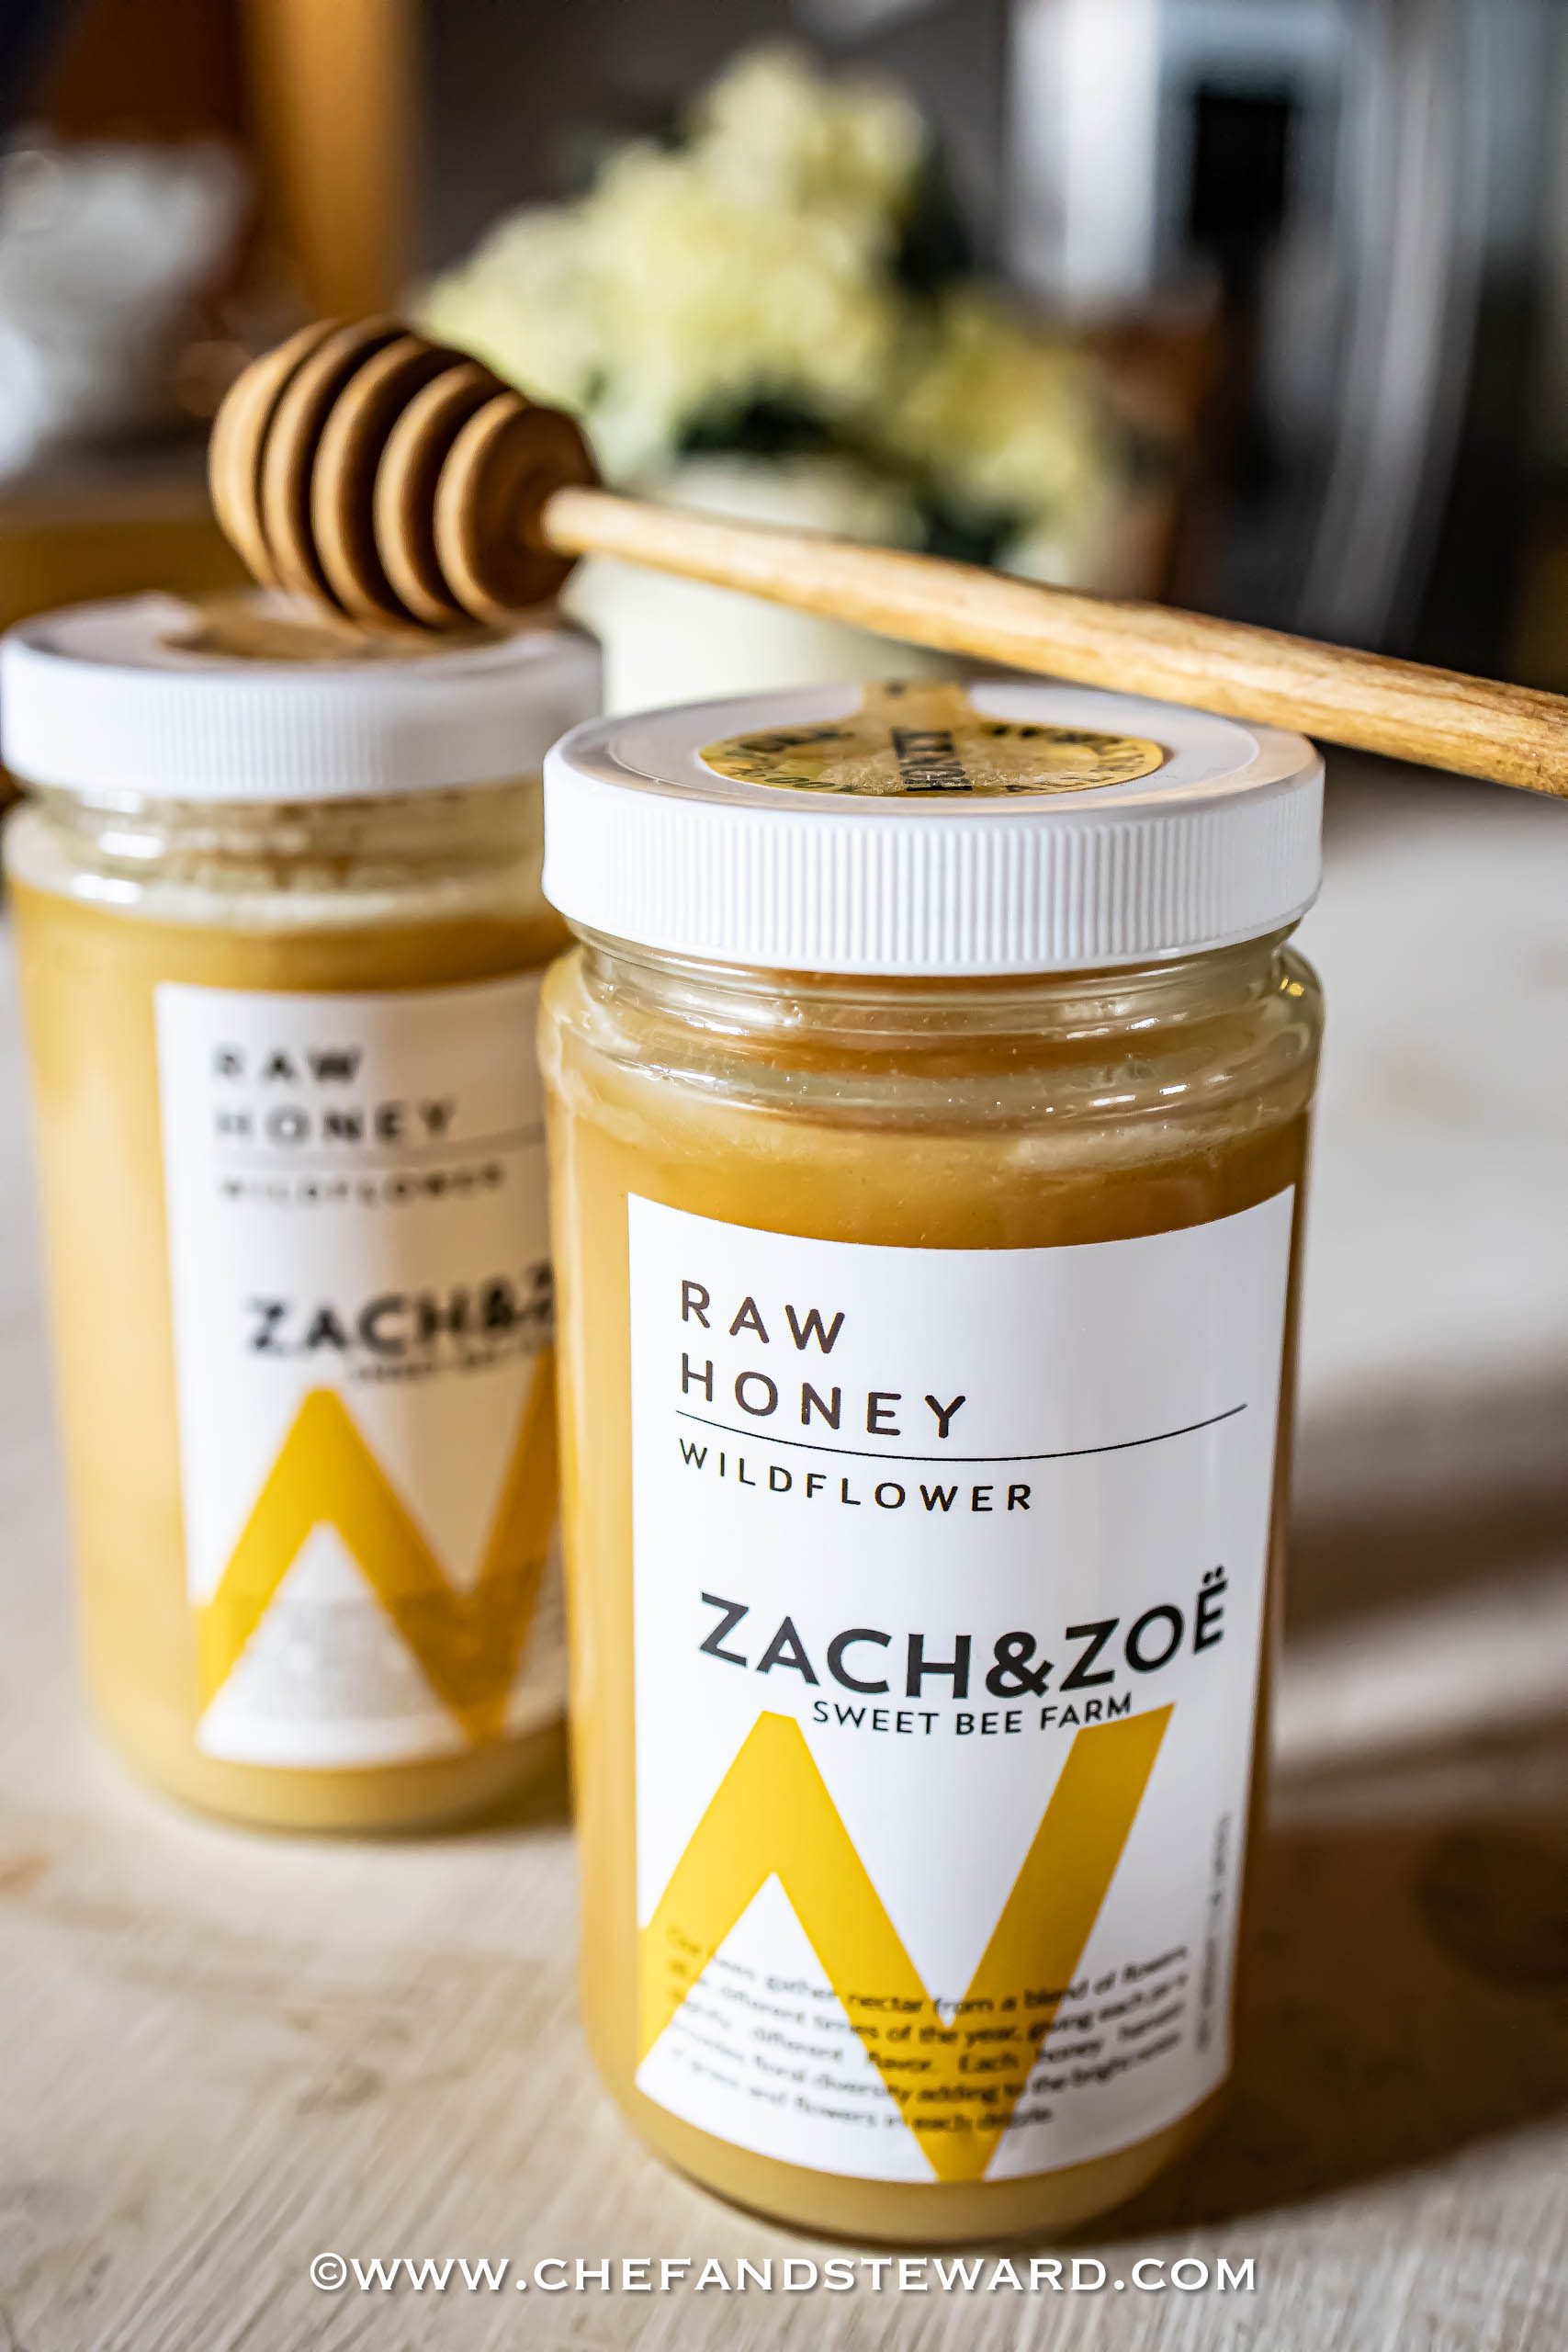 Picture of two jars of Zach and Zoe honey with honey dipper and flowers in background